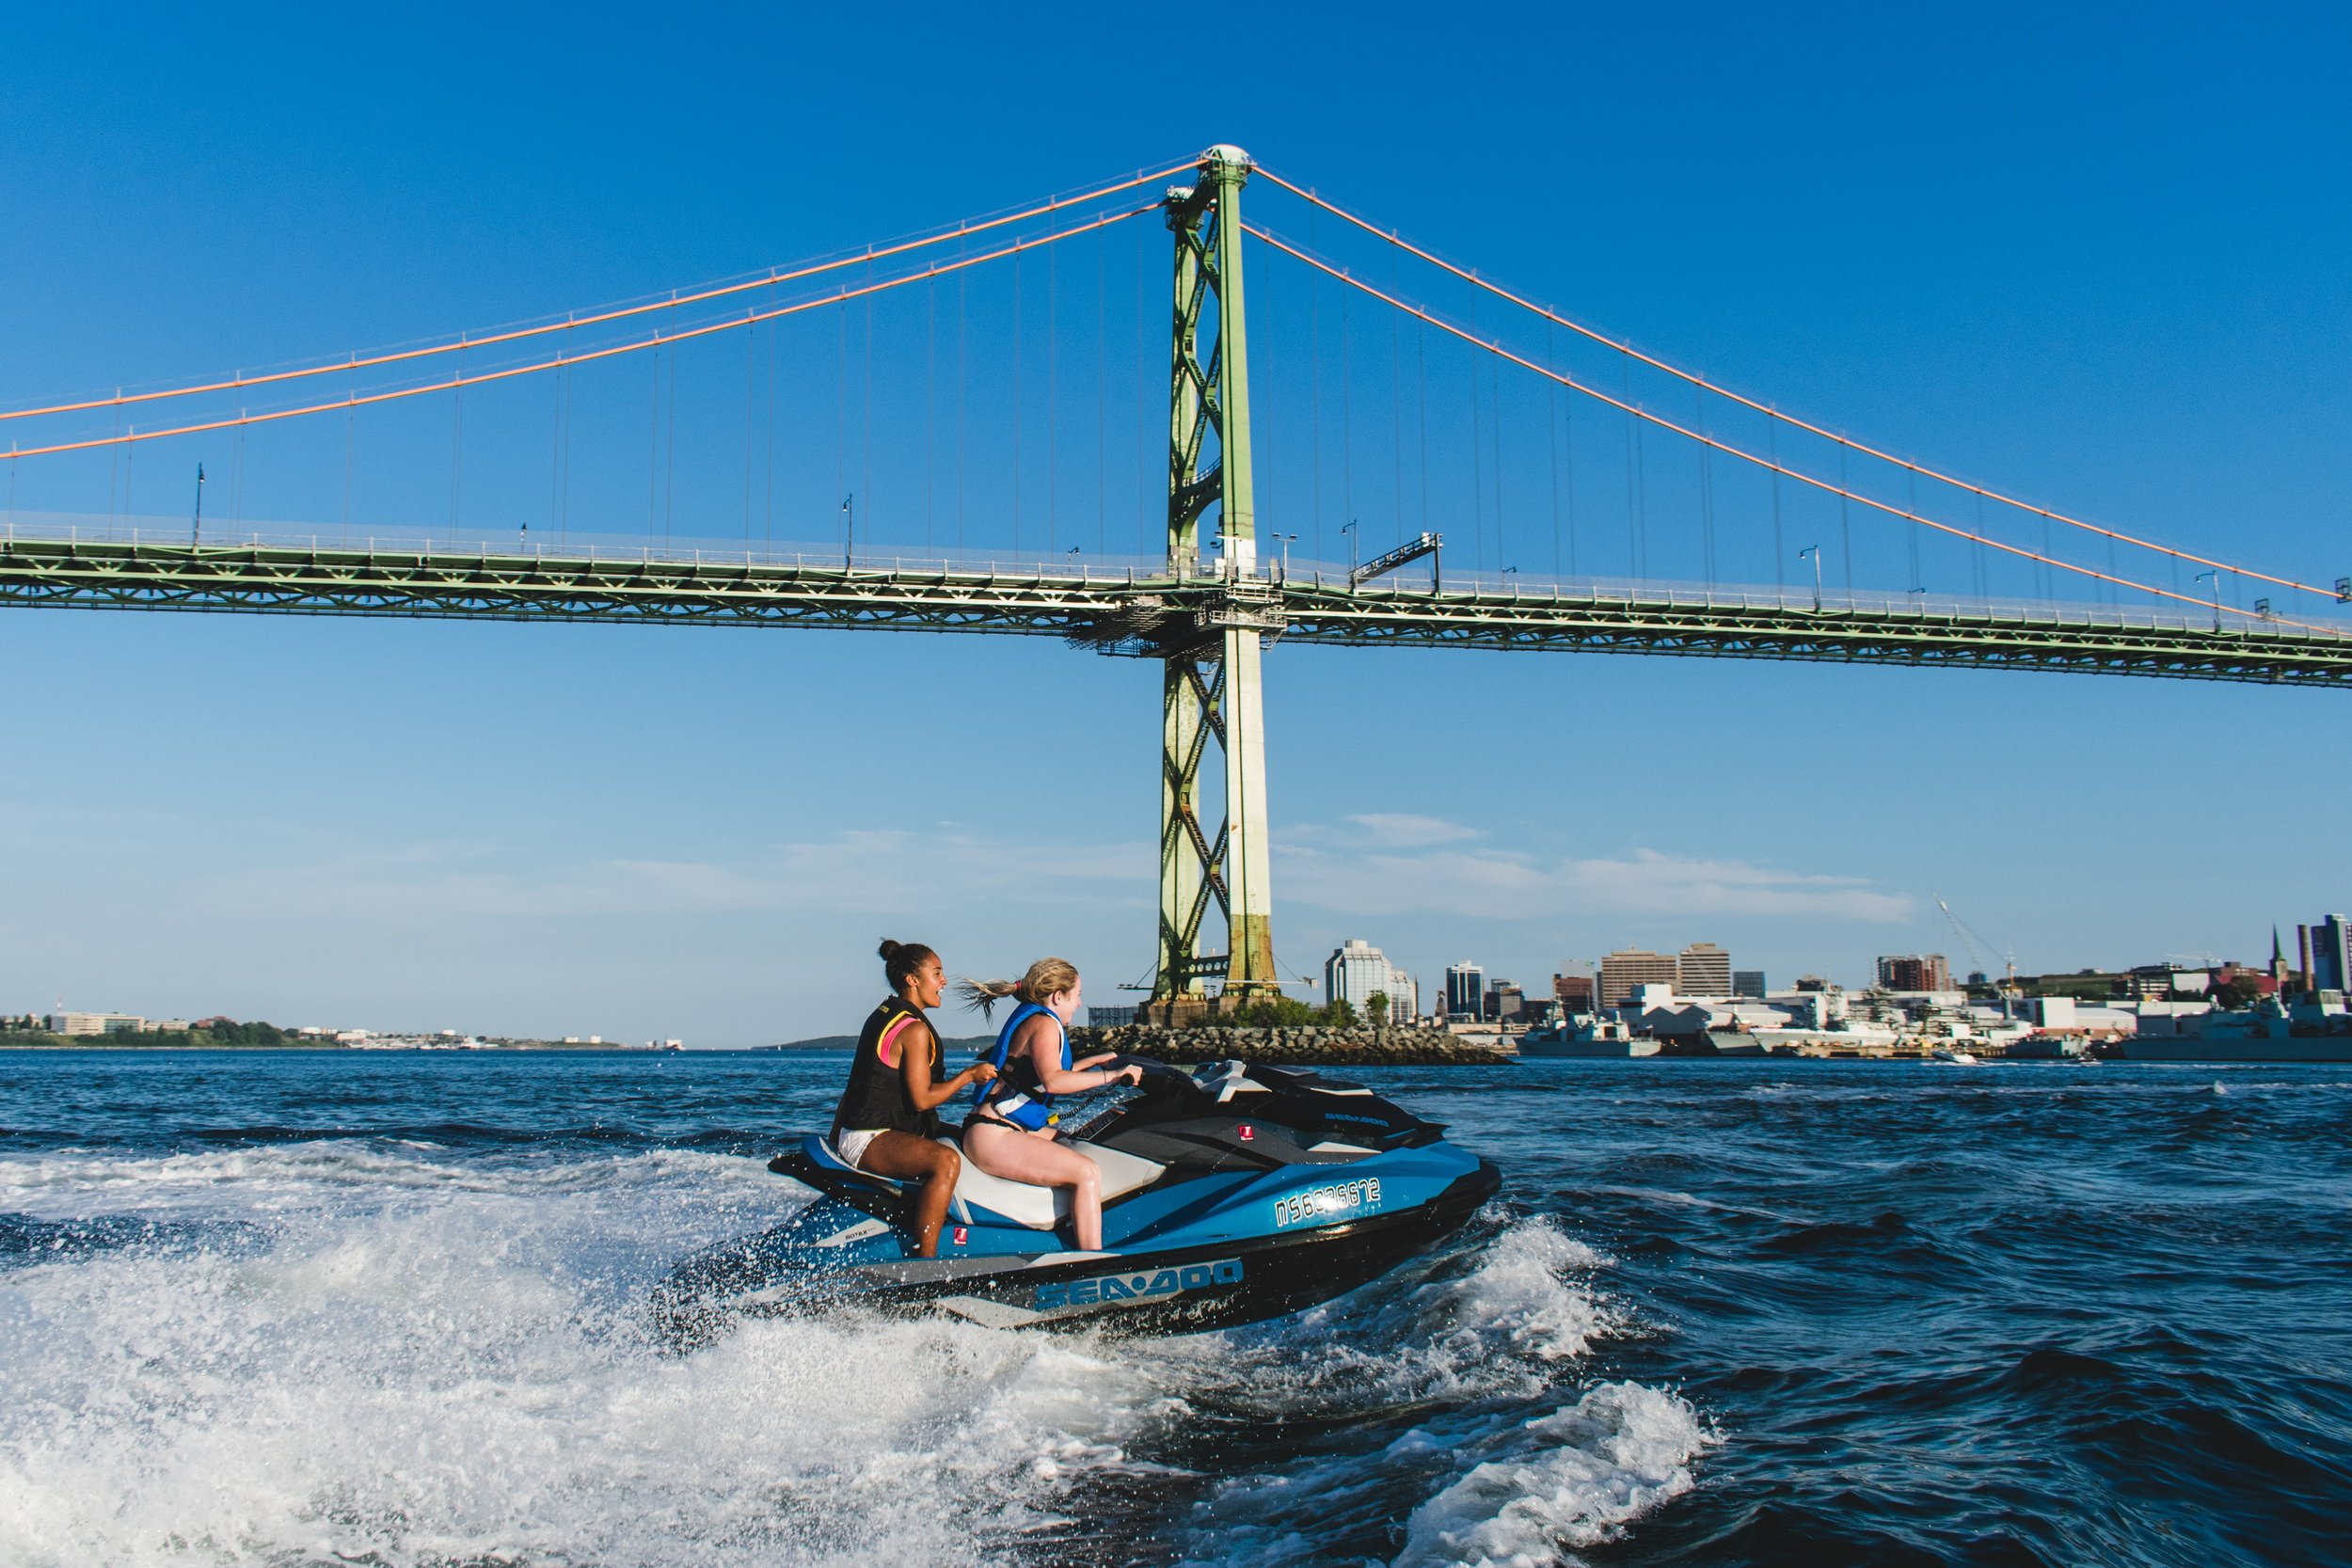 SEA-DOO RENTALS - Rent a Sea-Doo, and take your own scenic tour of Georges Island, McNabs Island, the Halifax Waterfront and the Bedford Basin, or just zip through the waves. It's up to you! The harbour is YOURS!